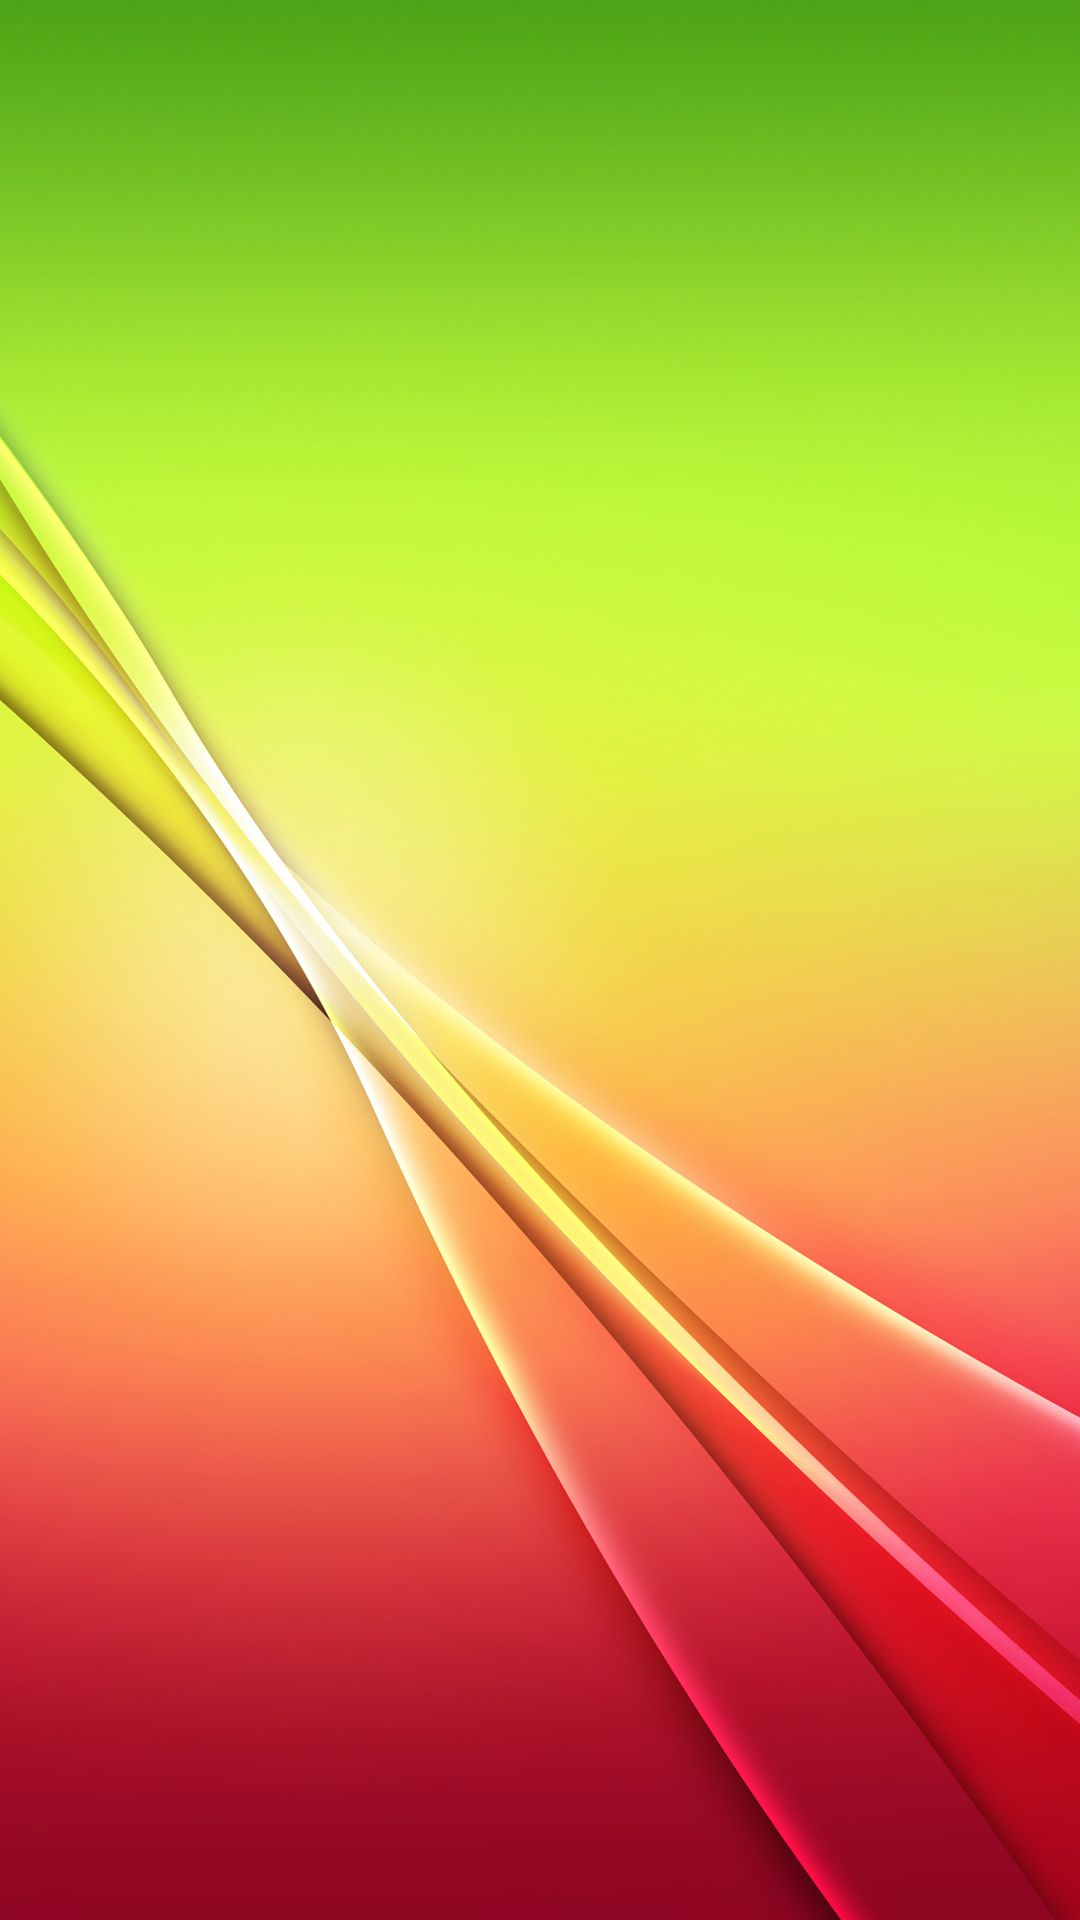 Bright Wave #iPhone #7 #wallpaper | iPhone 6~8 Wallpapers in 2019 | Iphone 6 wallpaper, Iphone ...